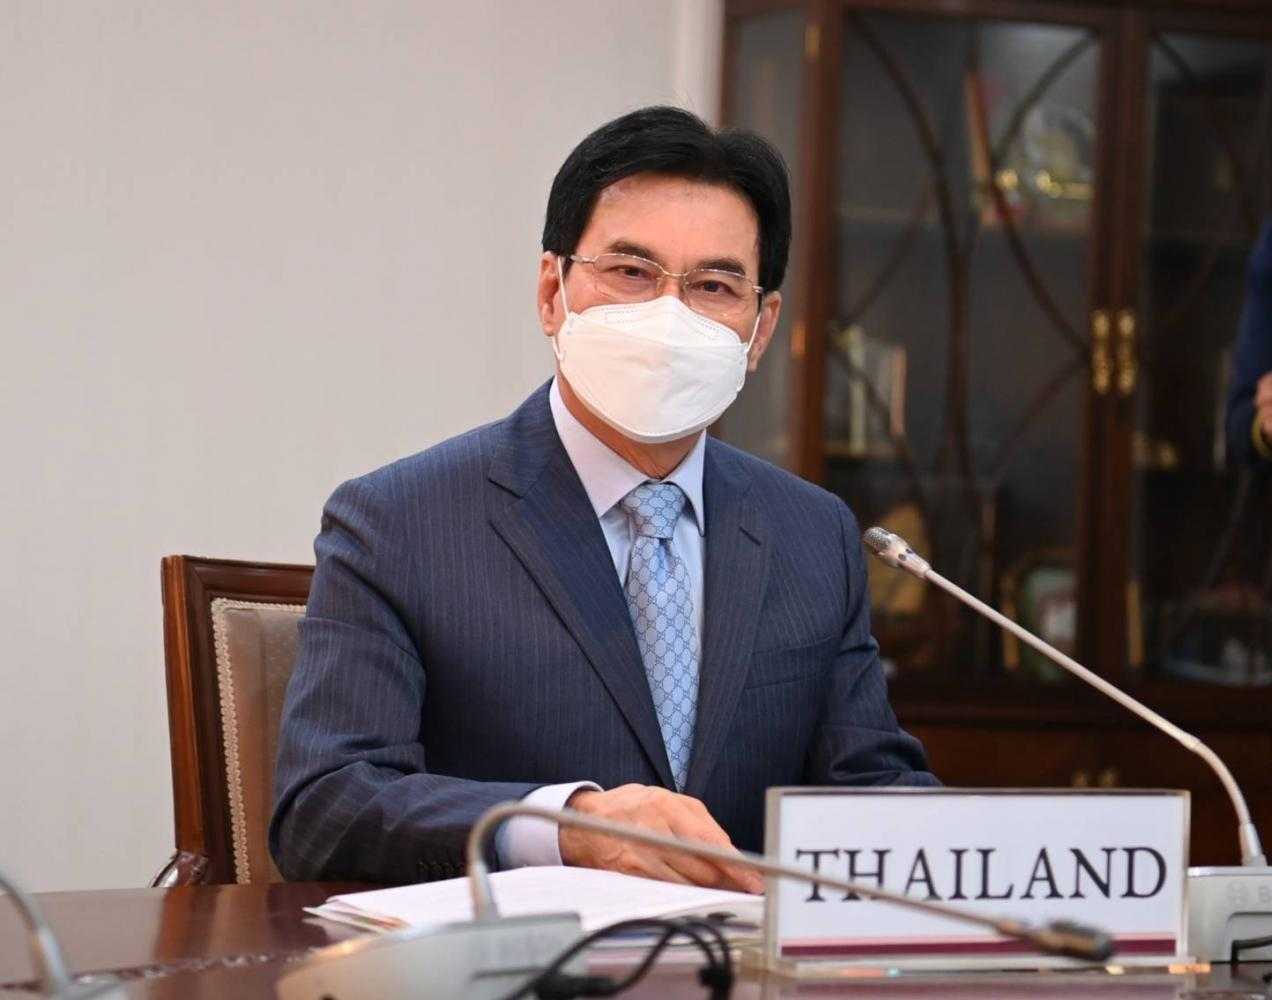 TRADE CHALLENGES: Commerce Minister Jurin Laksanawisit remotely attends the Apec trade ministers' meeting where he stresses equal access to vaccine for all Thais and urges the easing of border restrictions.